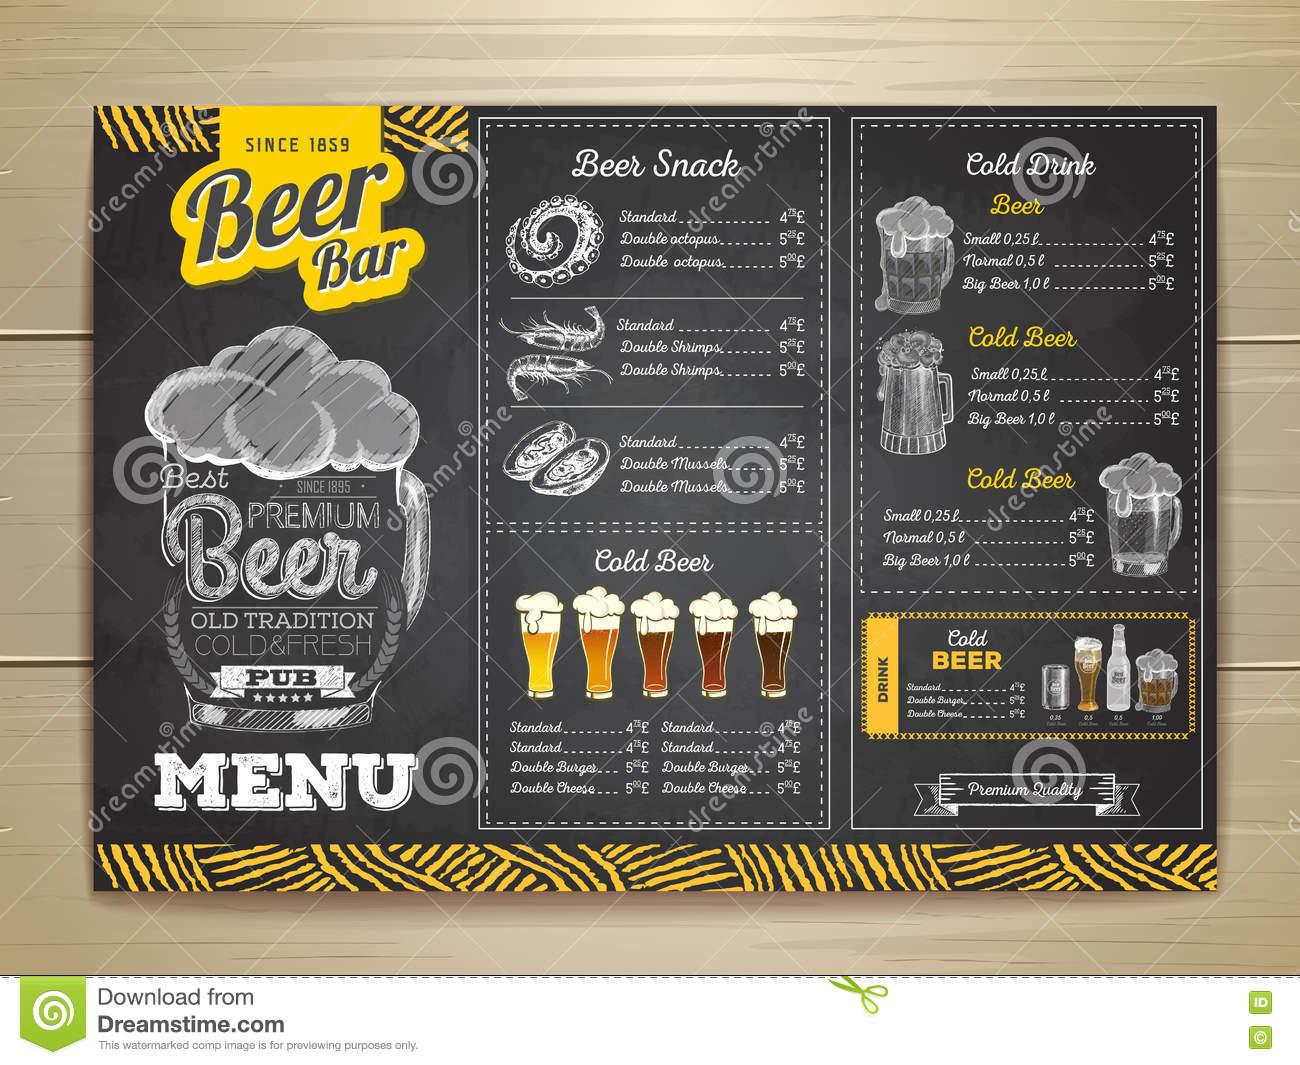 Vintage Chalk Drawing Beer Menu Design Vector Image 72390168 – Beer Menu